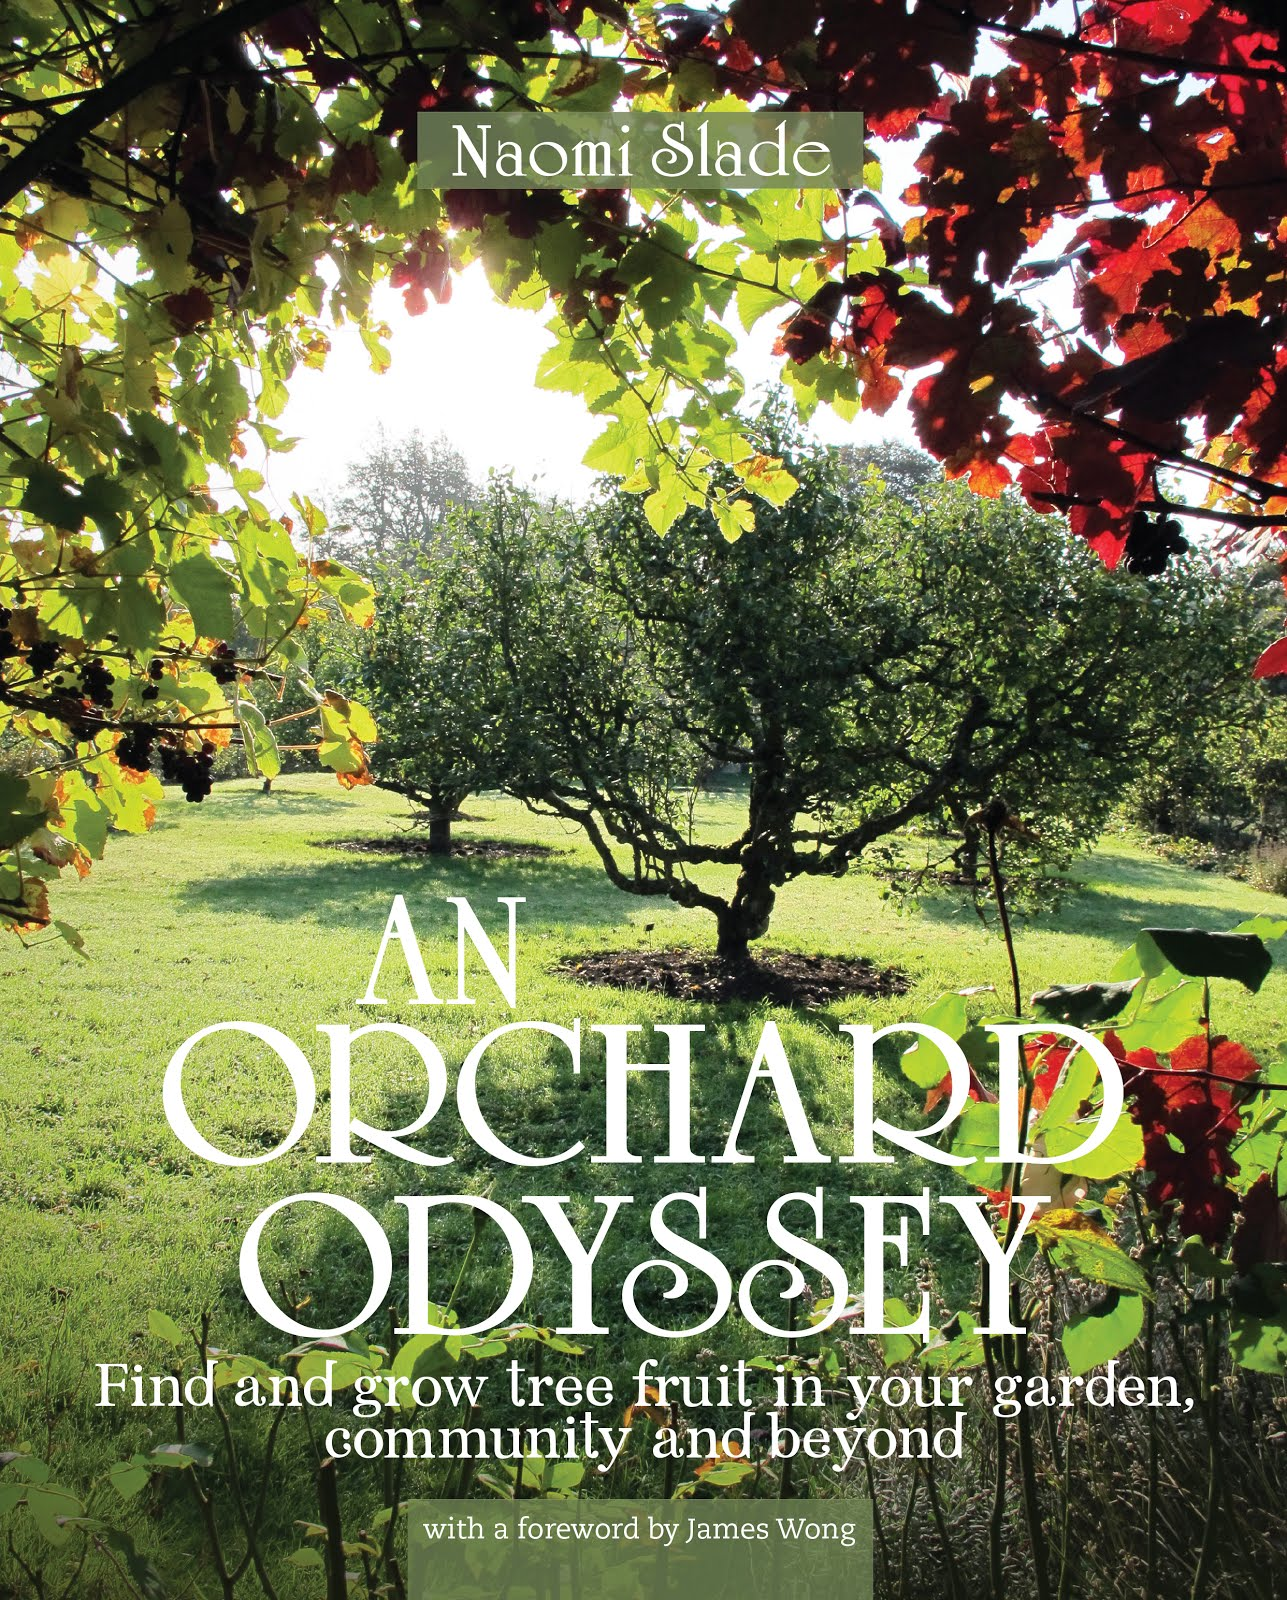 New book: An Orchard Odyssey